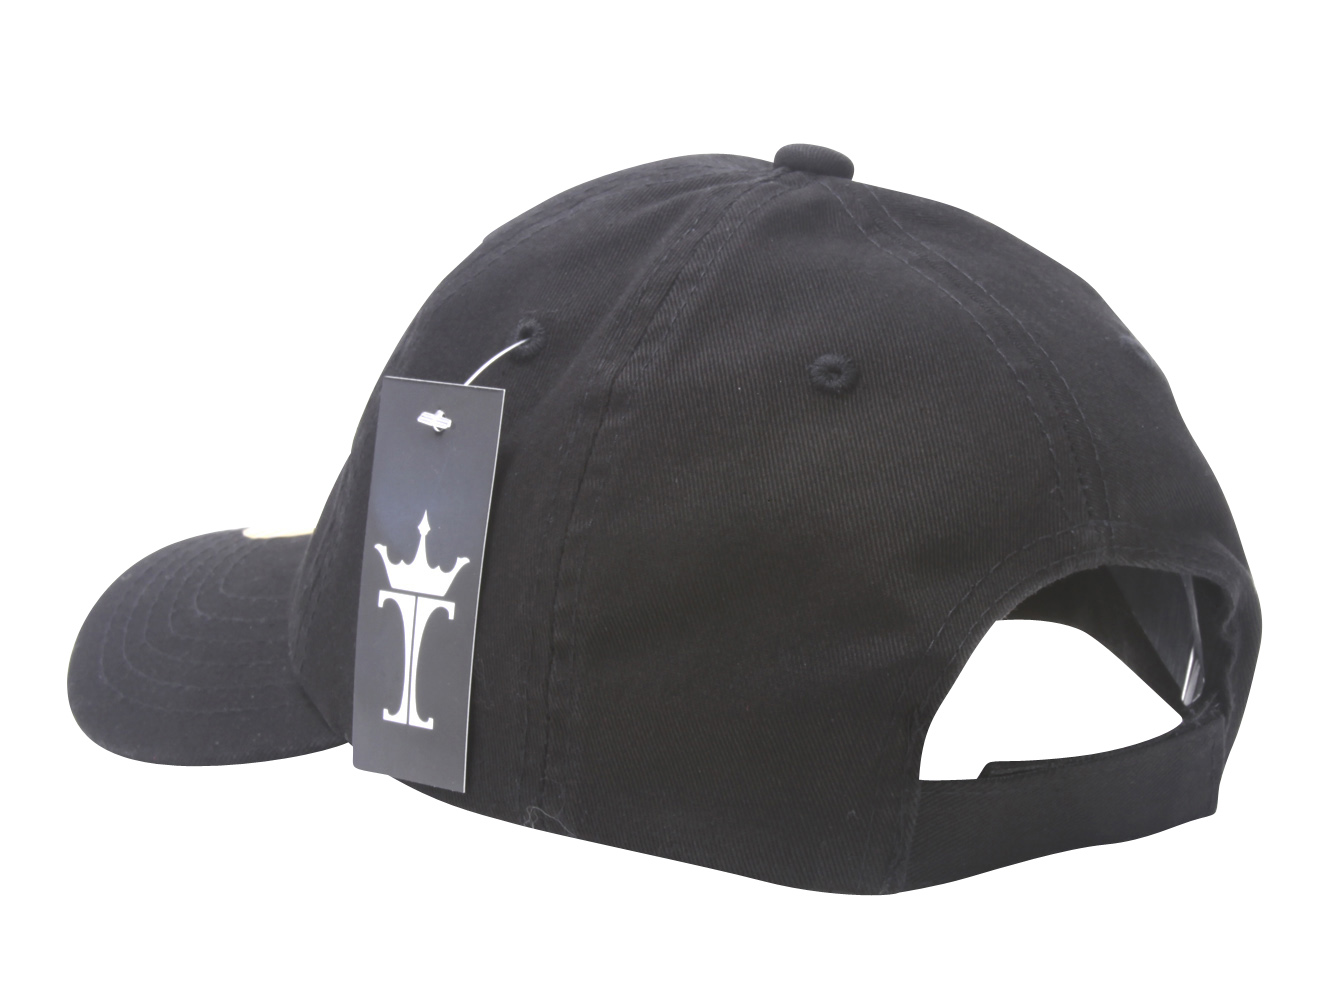 Low-Profile-Dyed-Cotton-Twill-Cap thumbnail 6